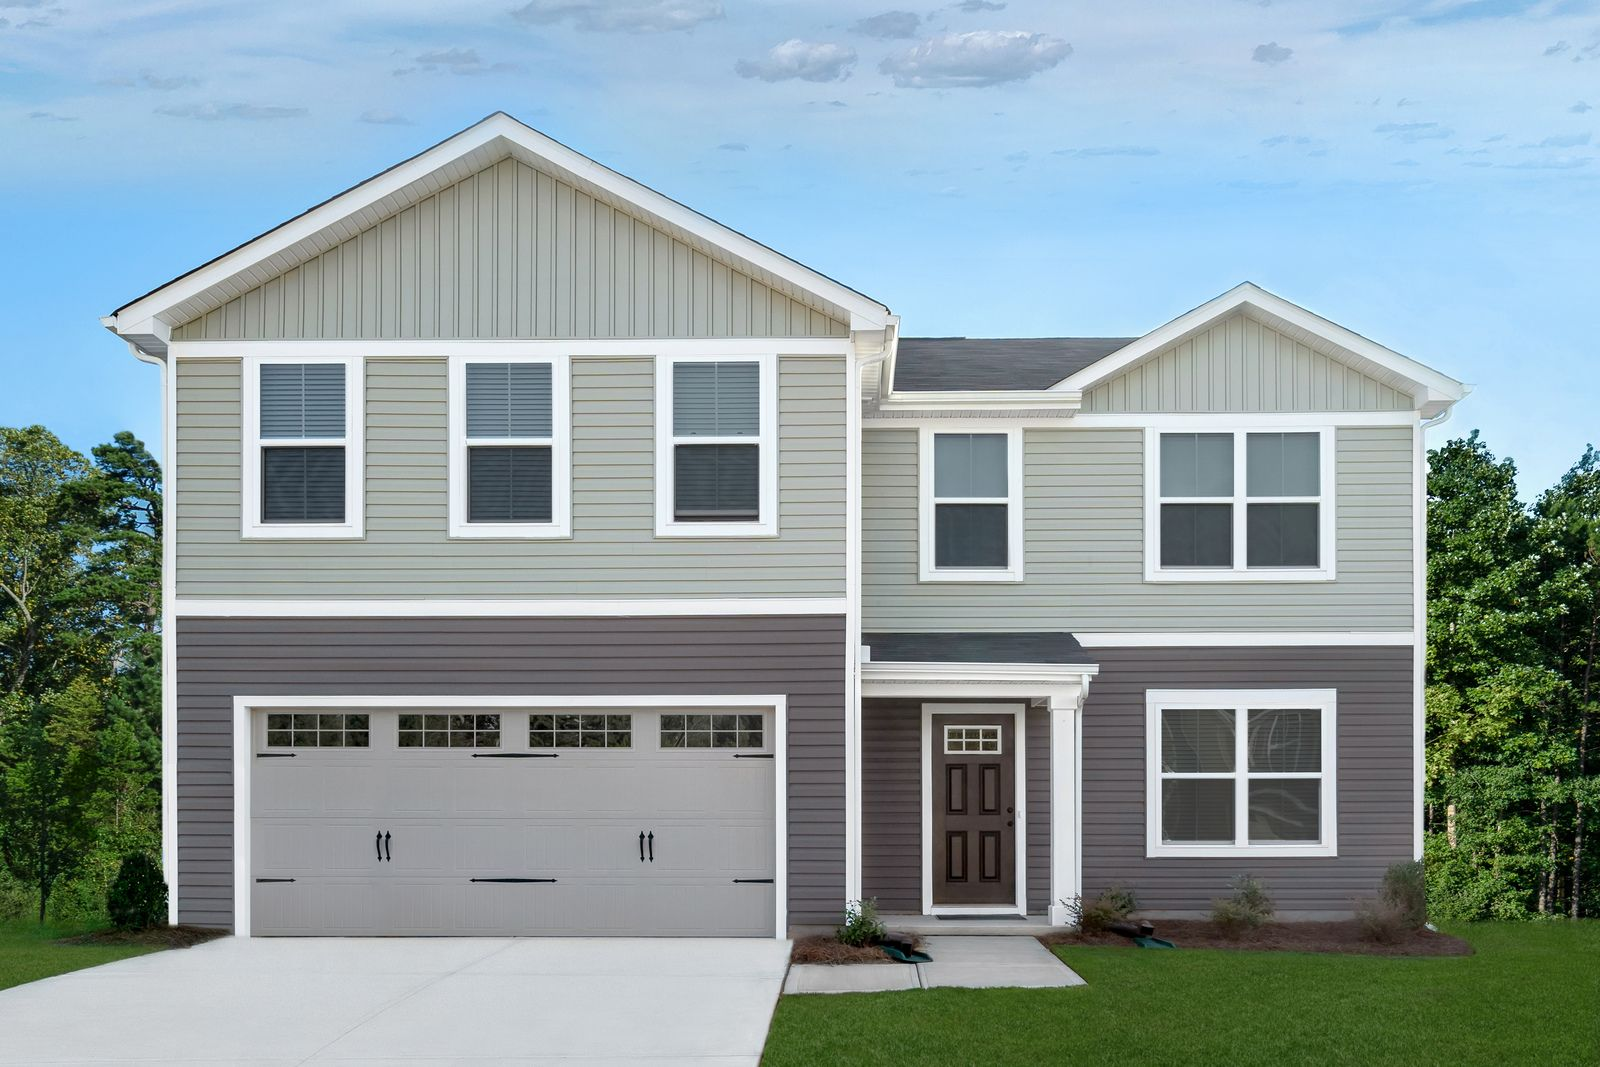 Own for the same or less than rent in Mauldin with all appliances included!:0% down financing available.Schedule your visit today to learn more!